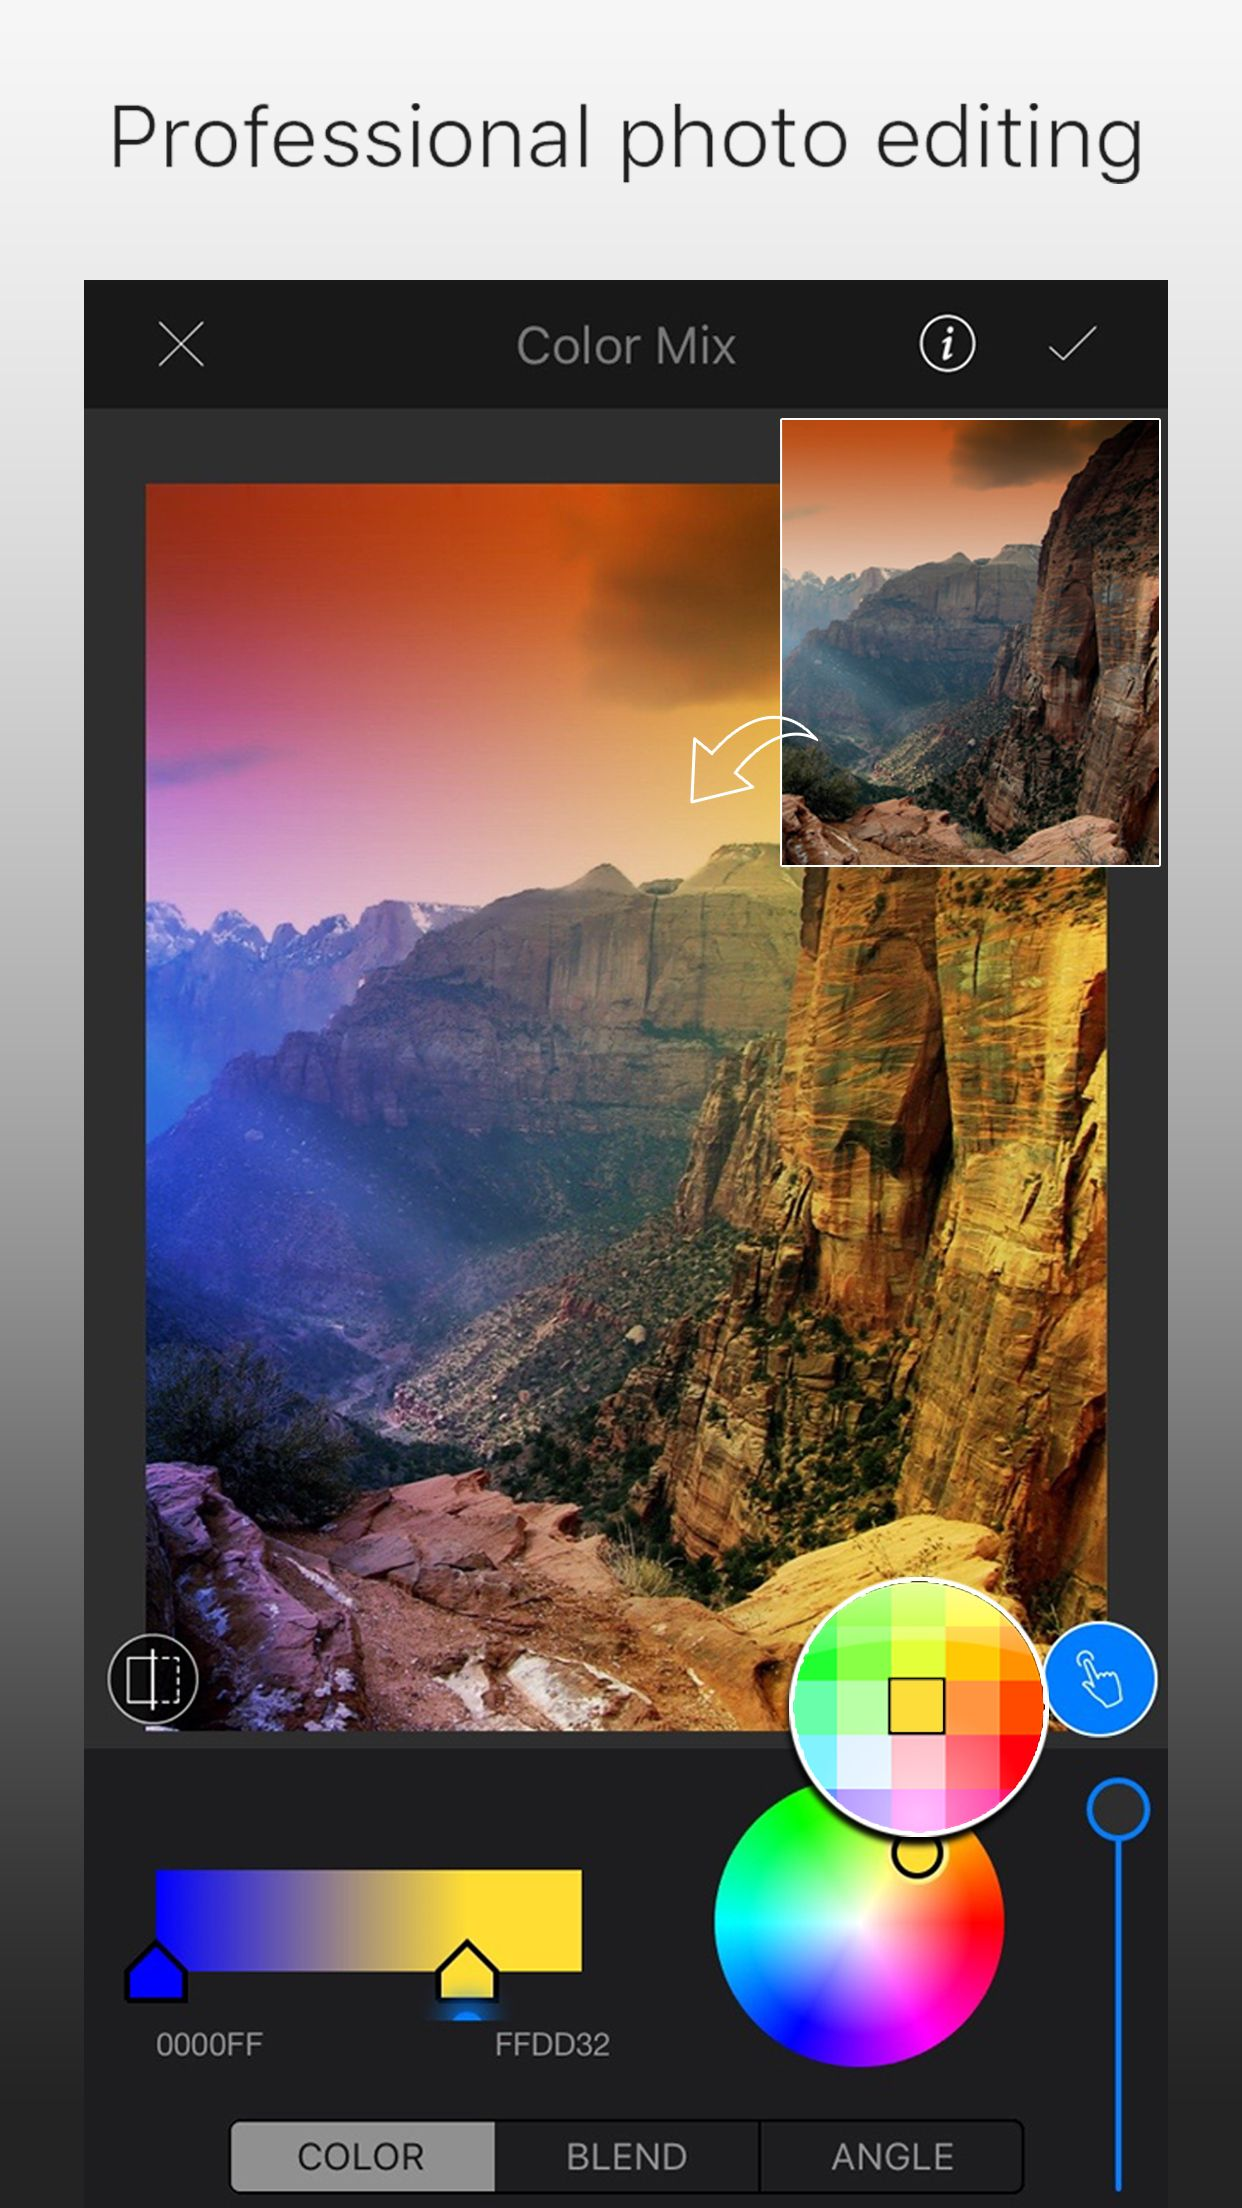 Apply color mix using lightx app photo editor color